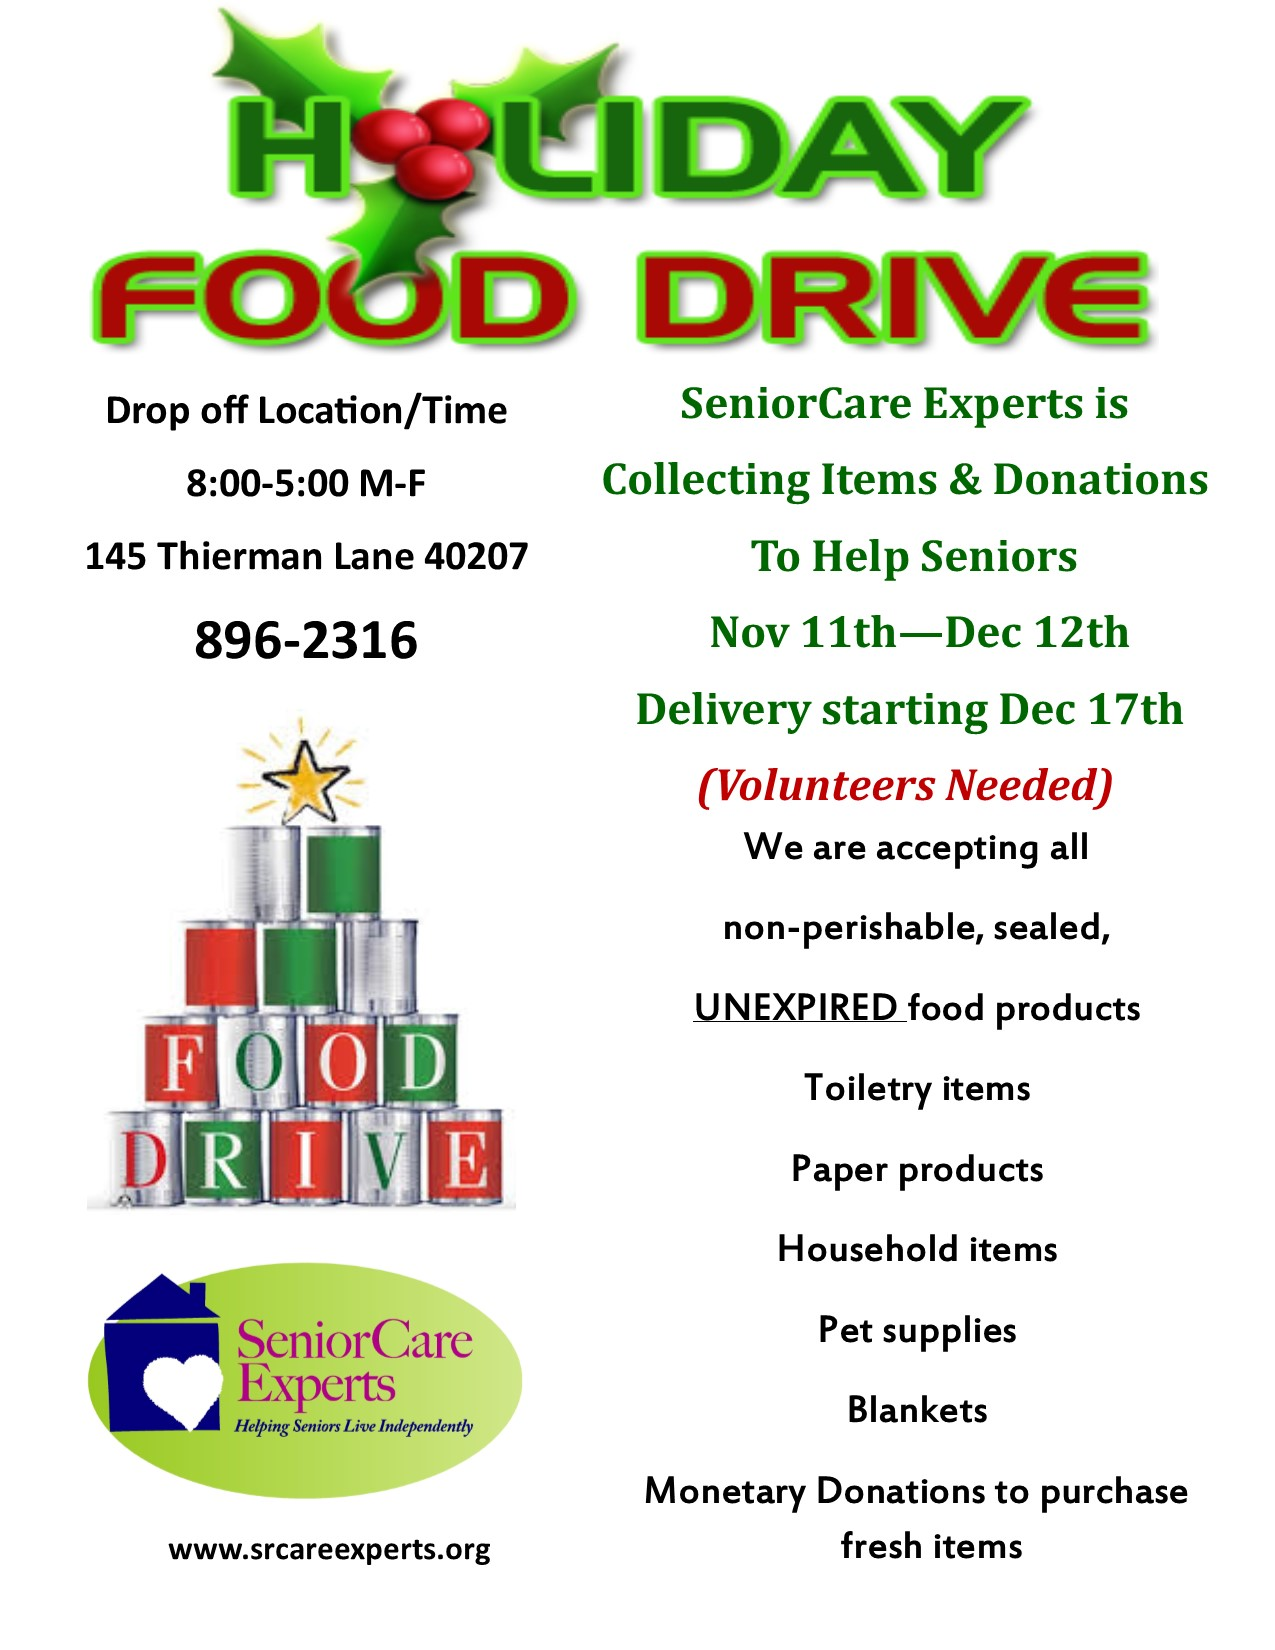 SeniorCare Experts Holiday Food Drive